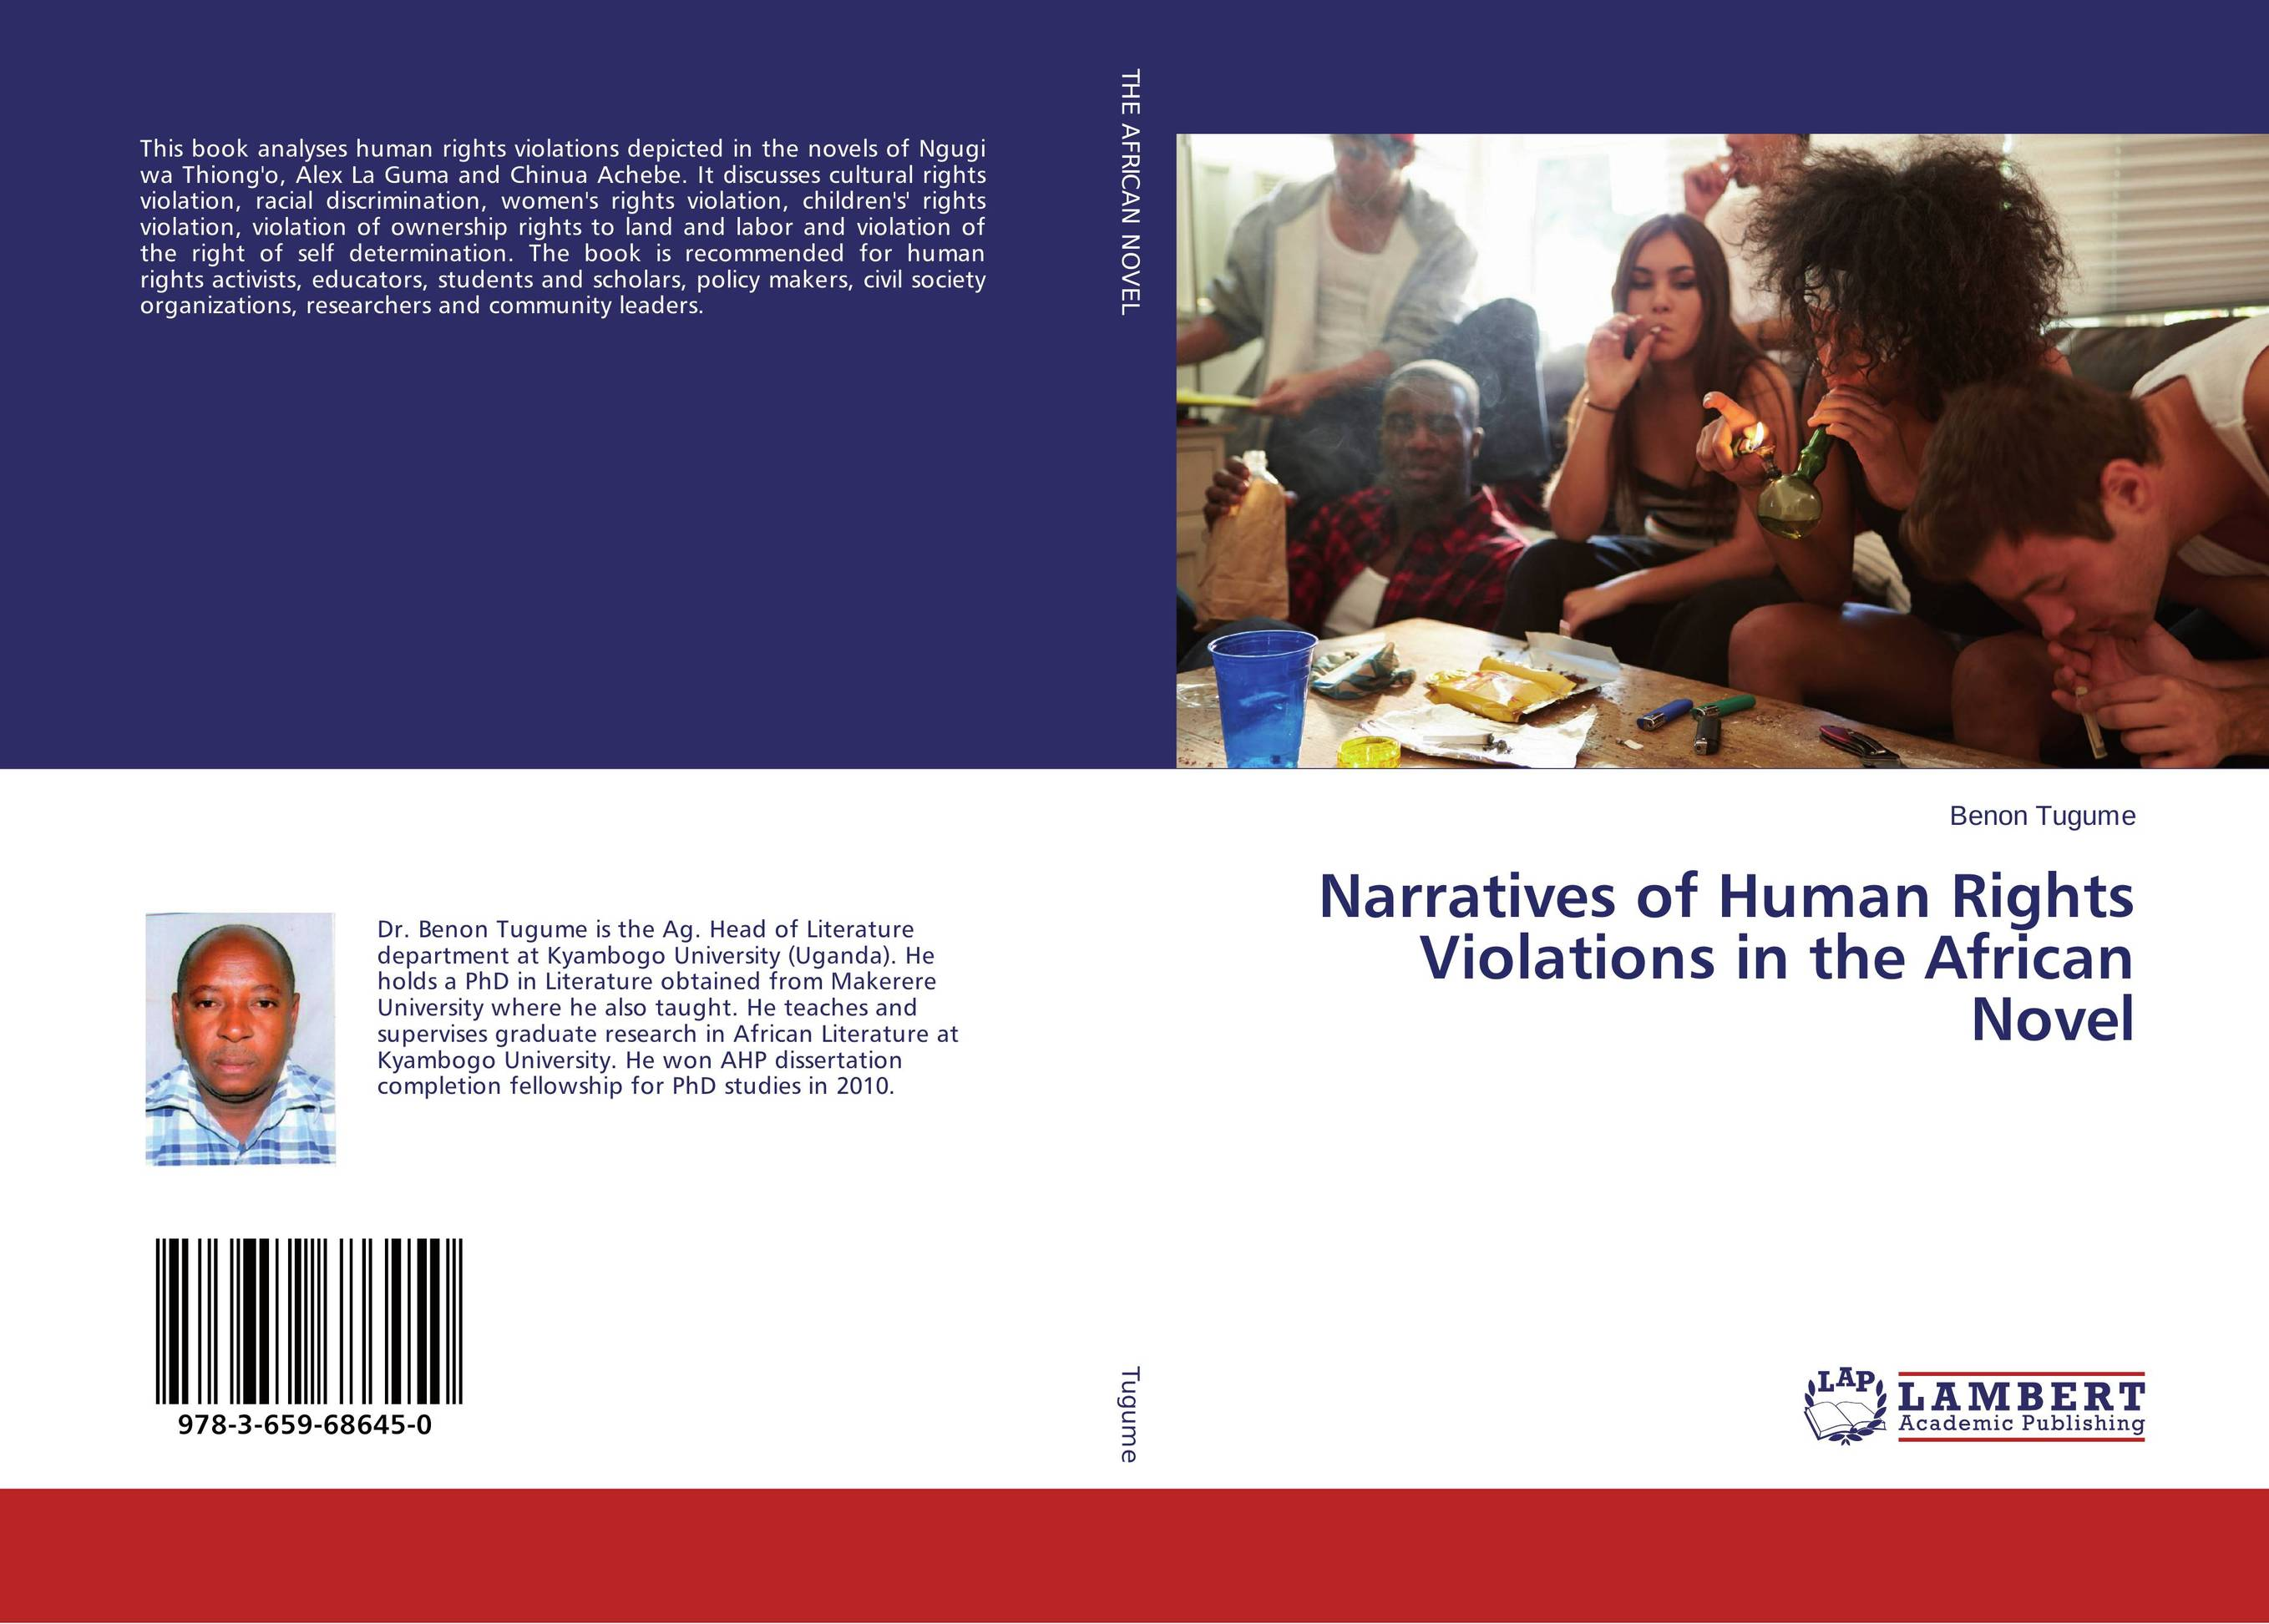 Narratives of Human Rights Violations in the African Novel marital rape as a violation of the fundamental human rights of women